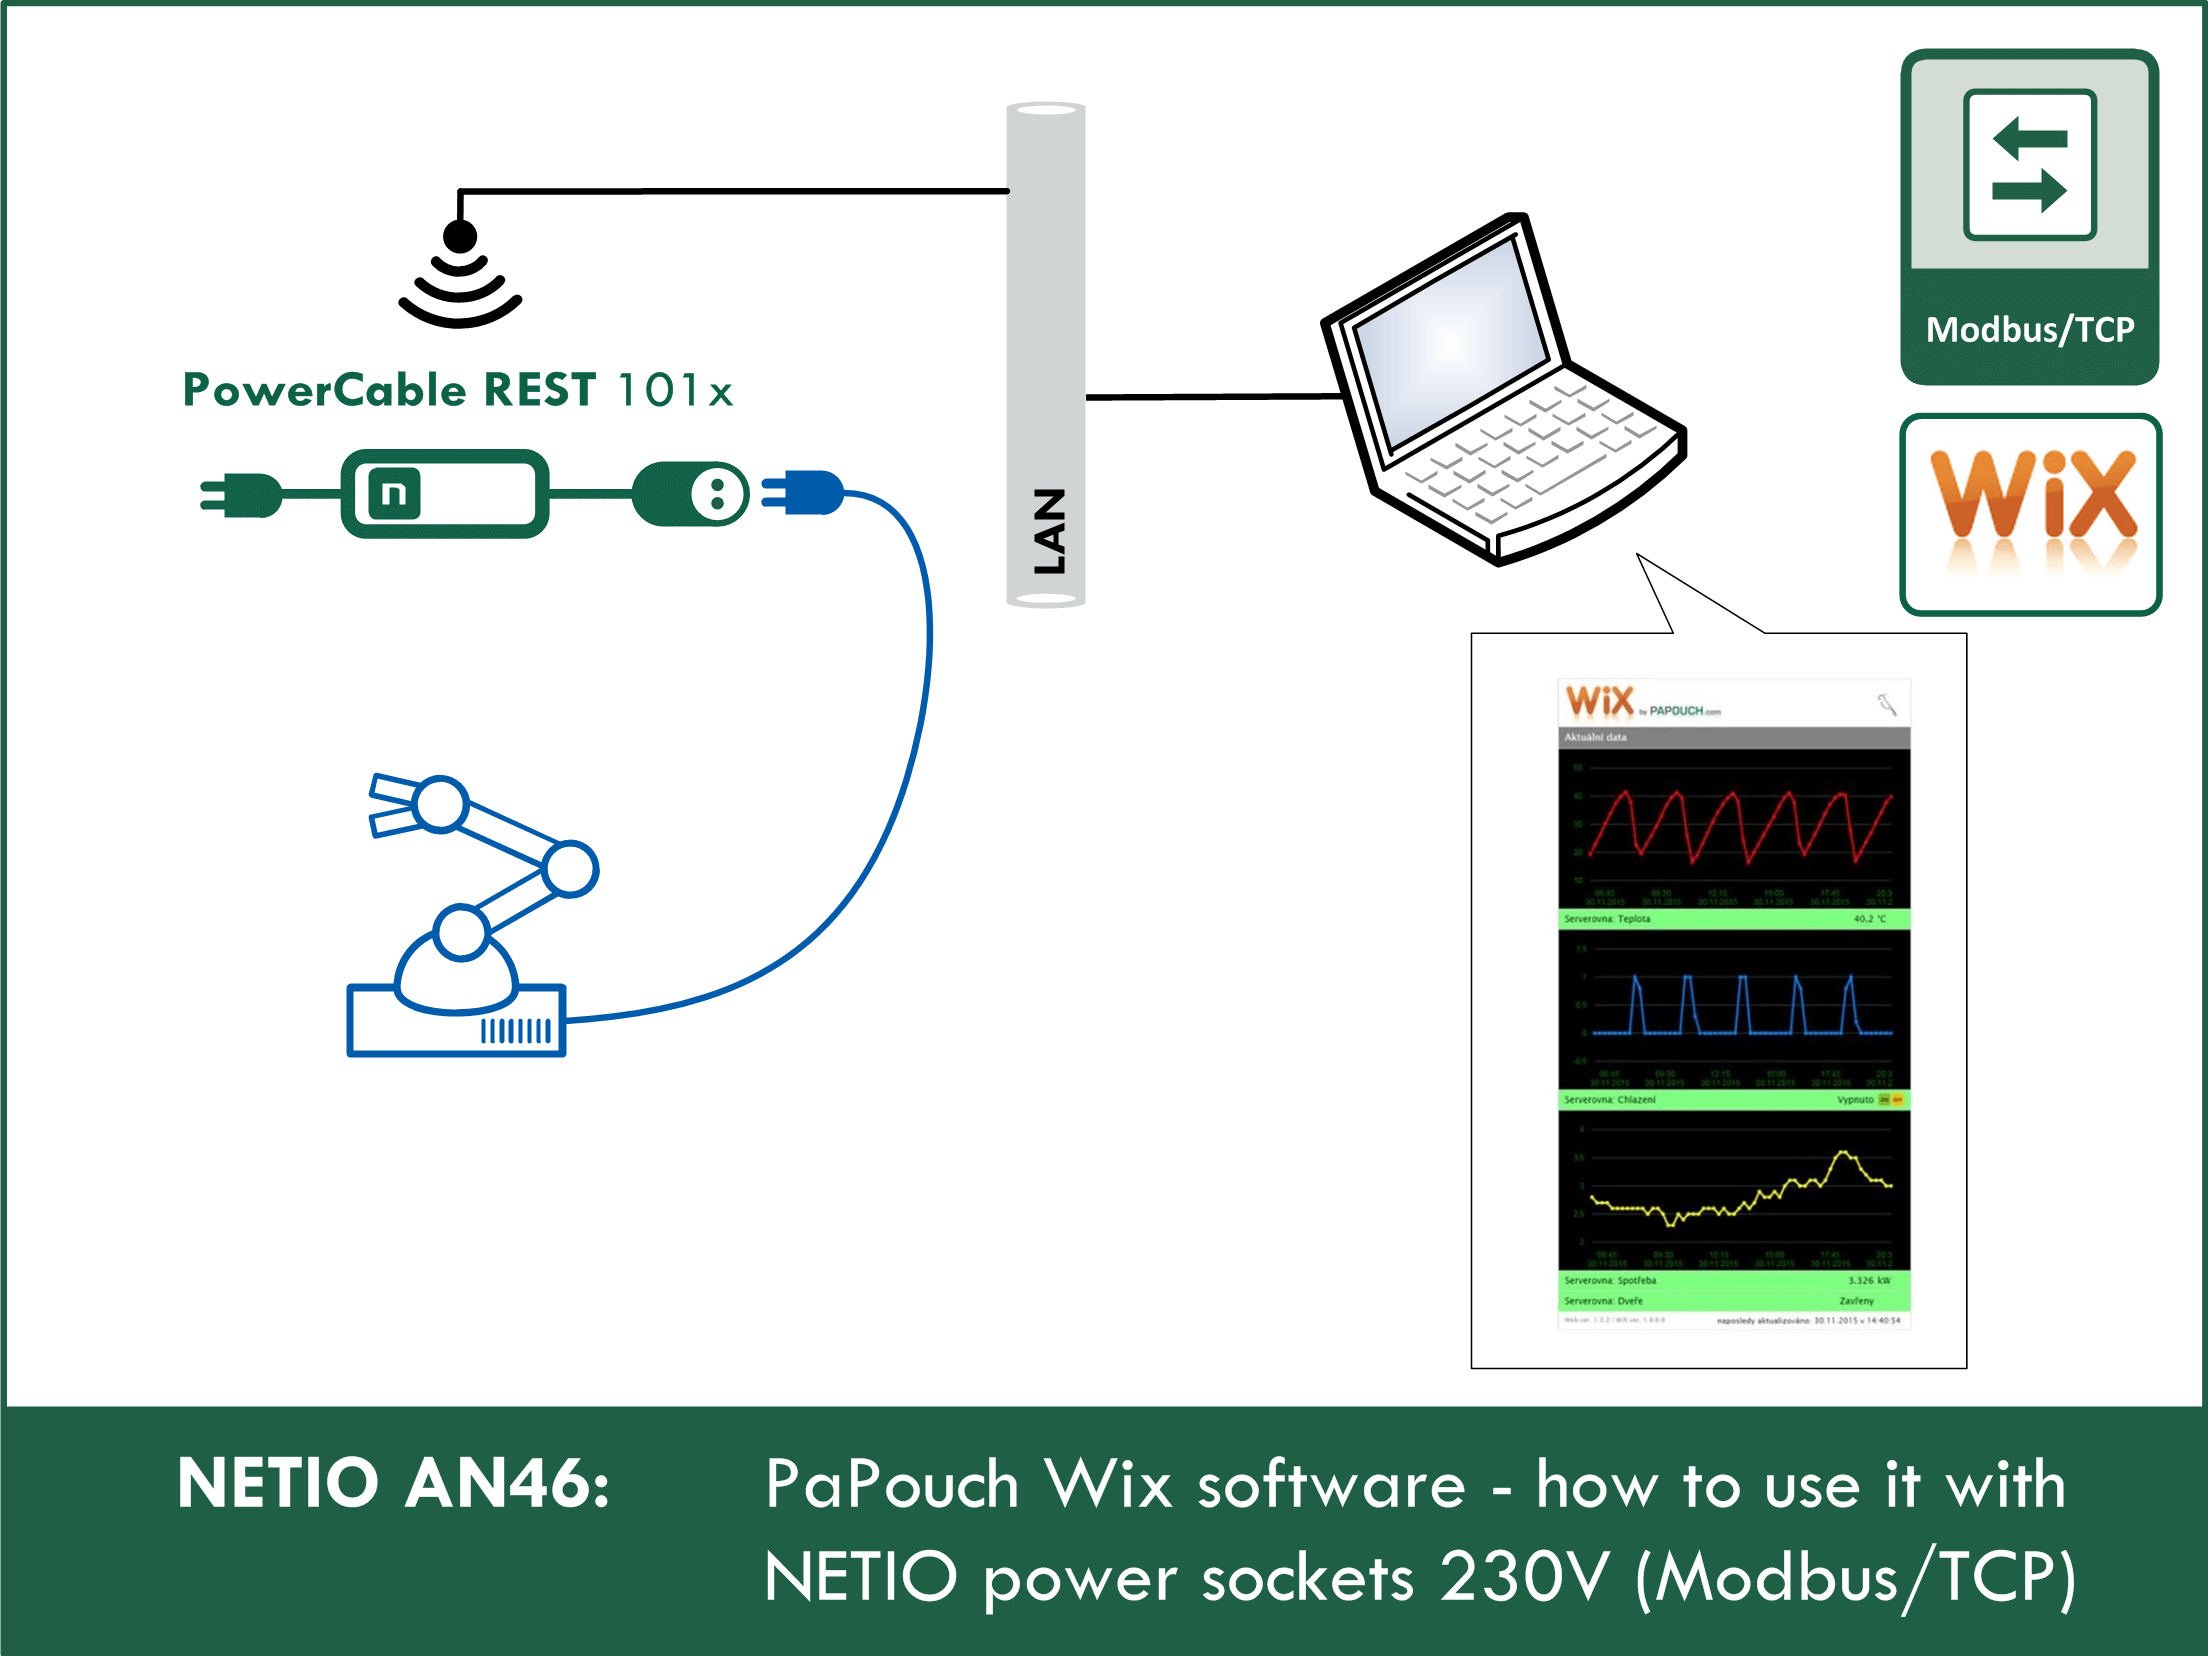 AN46 – PaPouch Wix software - how to use it with NETIO power sockets 230V (Modbus/TCP)